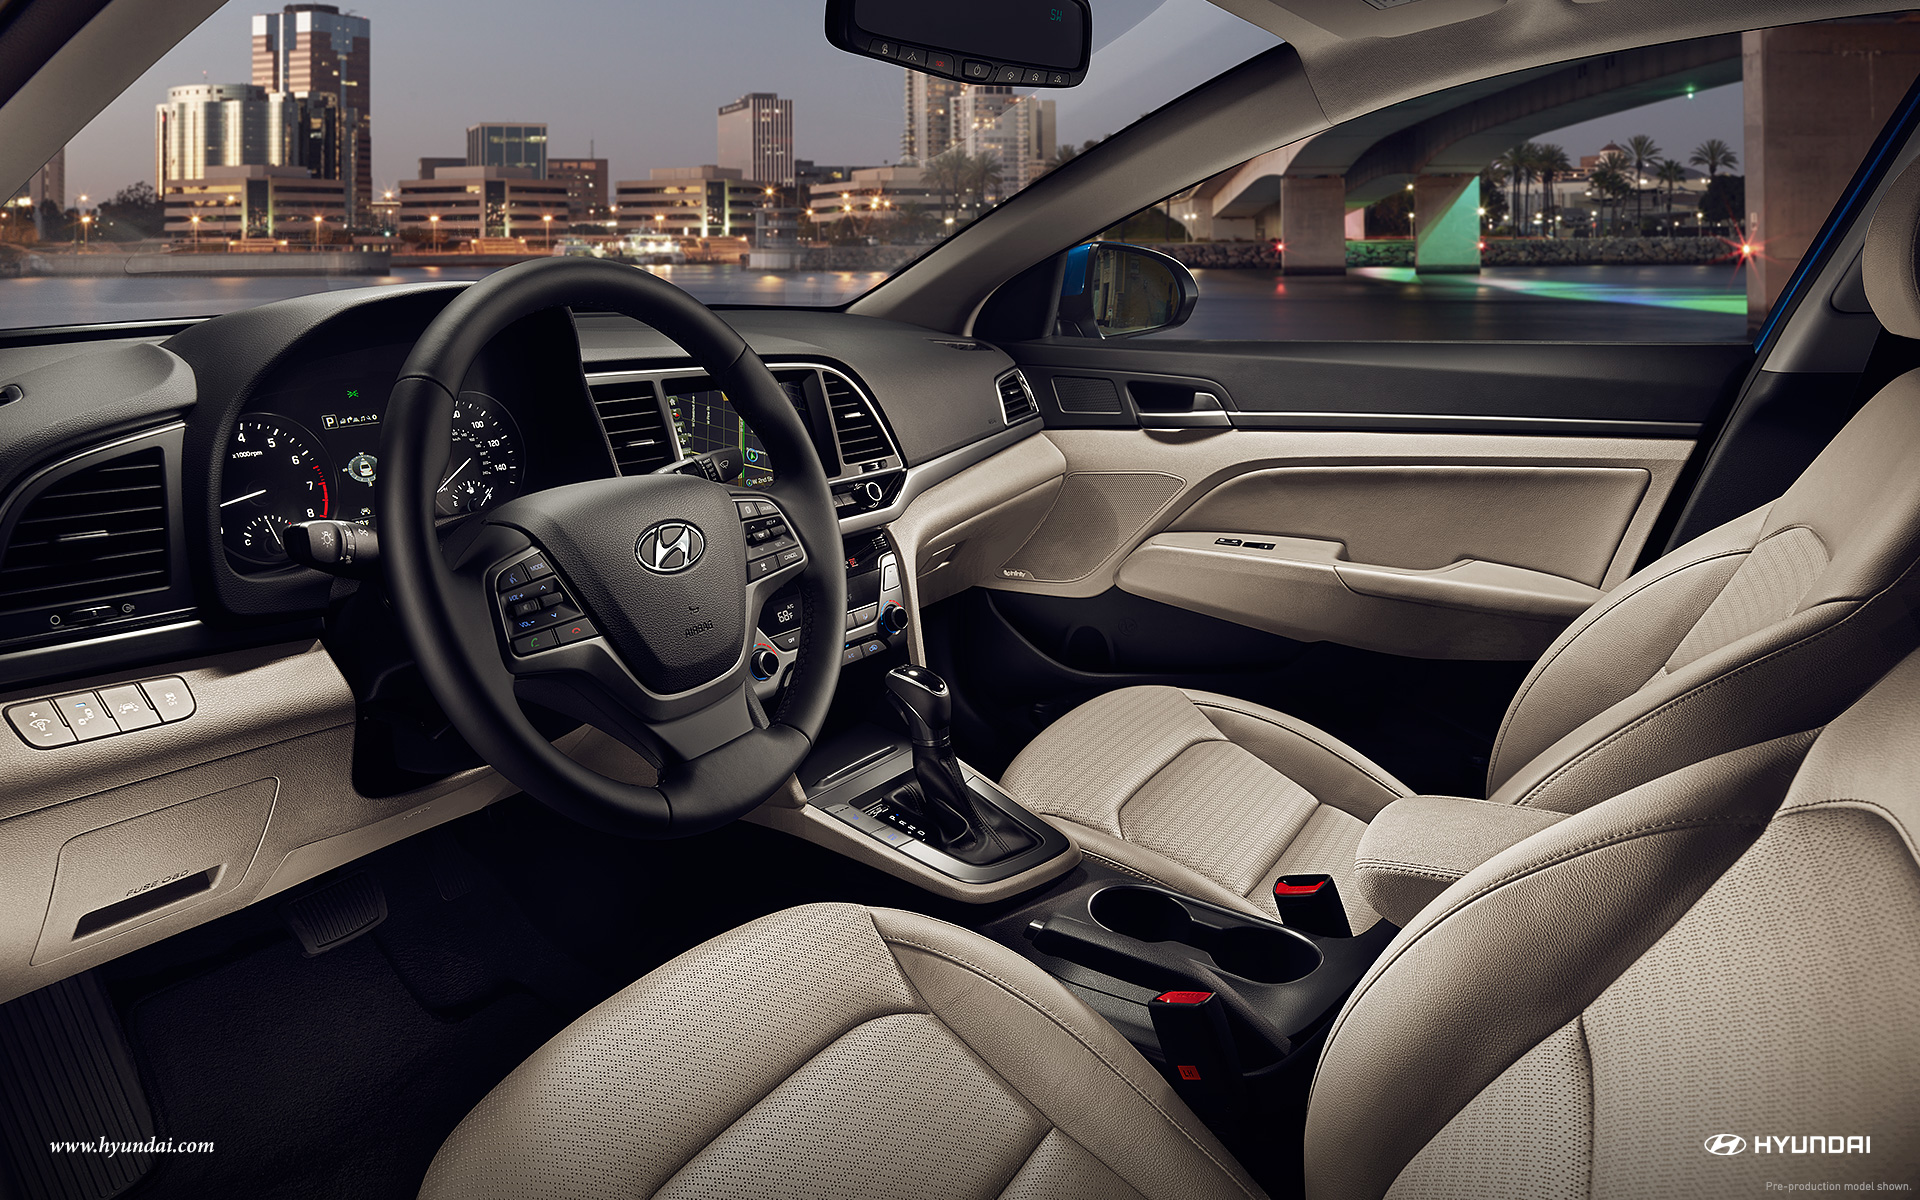 sales vehicle hyundai worldwide com news related cell begins electric nexo fuel of en room about